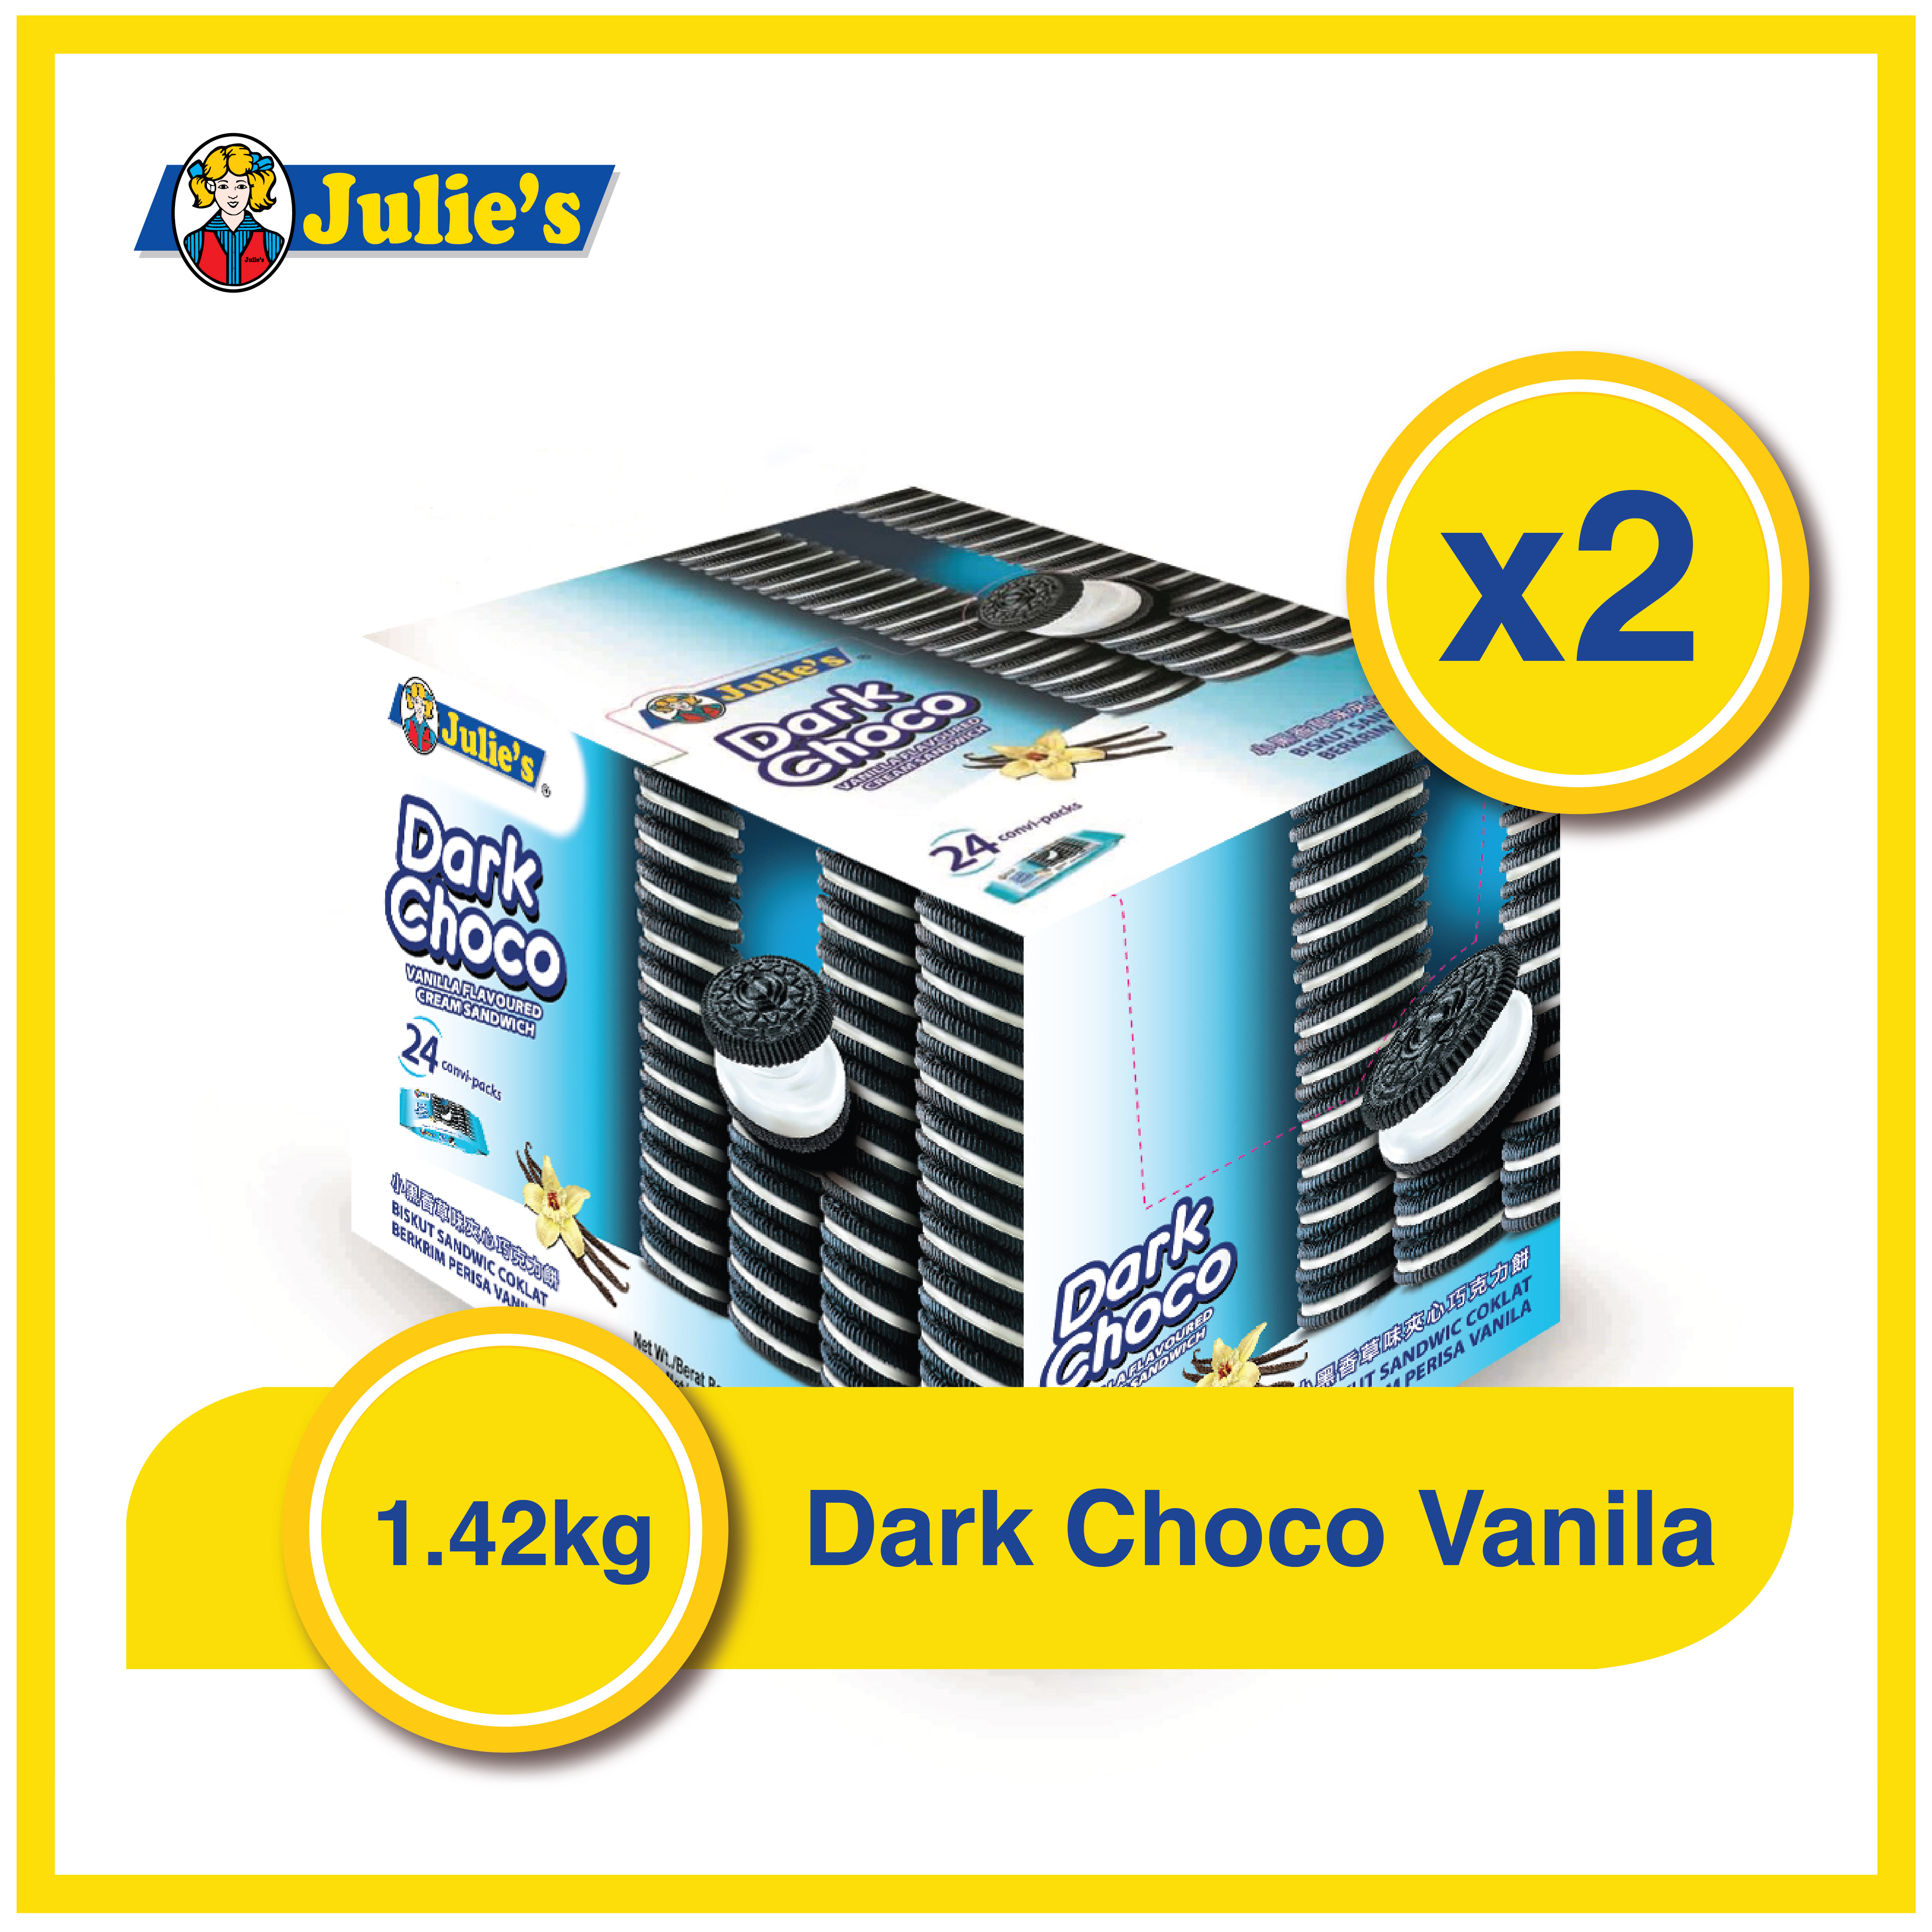 Julie's Dark Choco Vanilla Flavoured Cream Sandwich 1.42kg x 1 box ( 59.4g x 24 convi pack ) + (FREE 1 BOX 1.42kg)